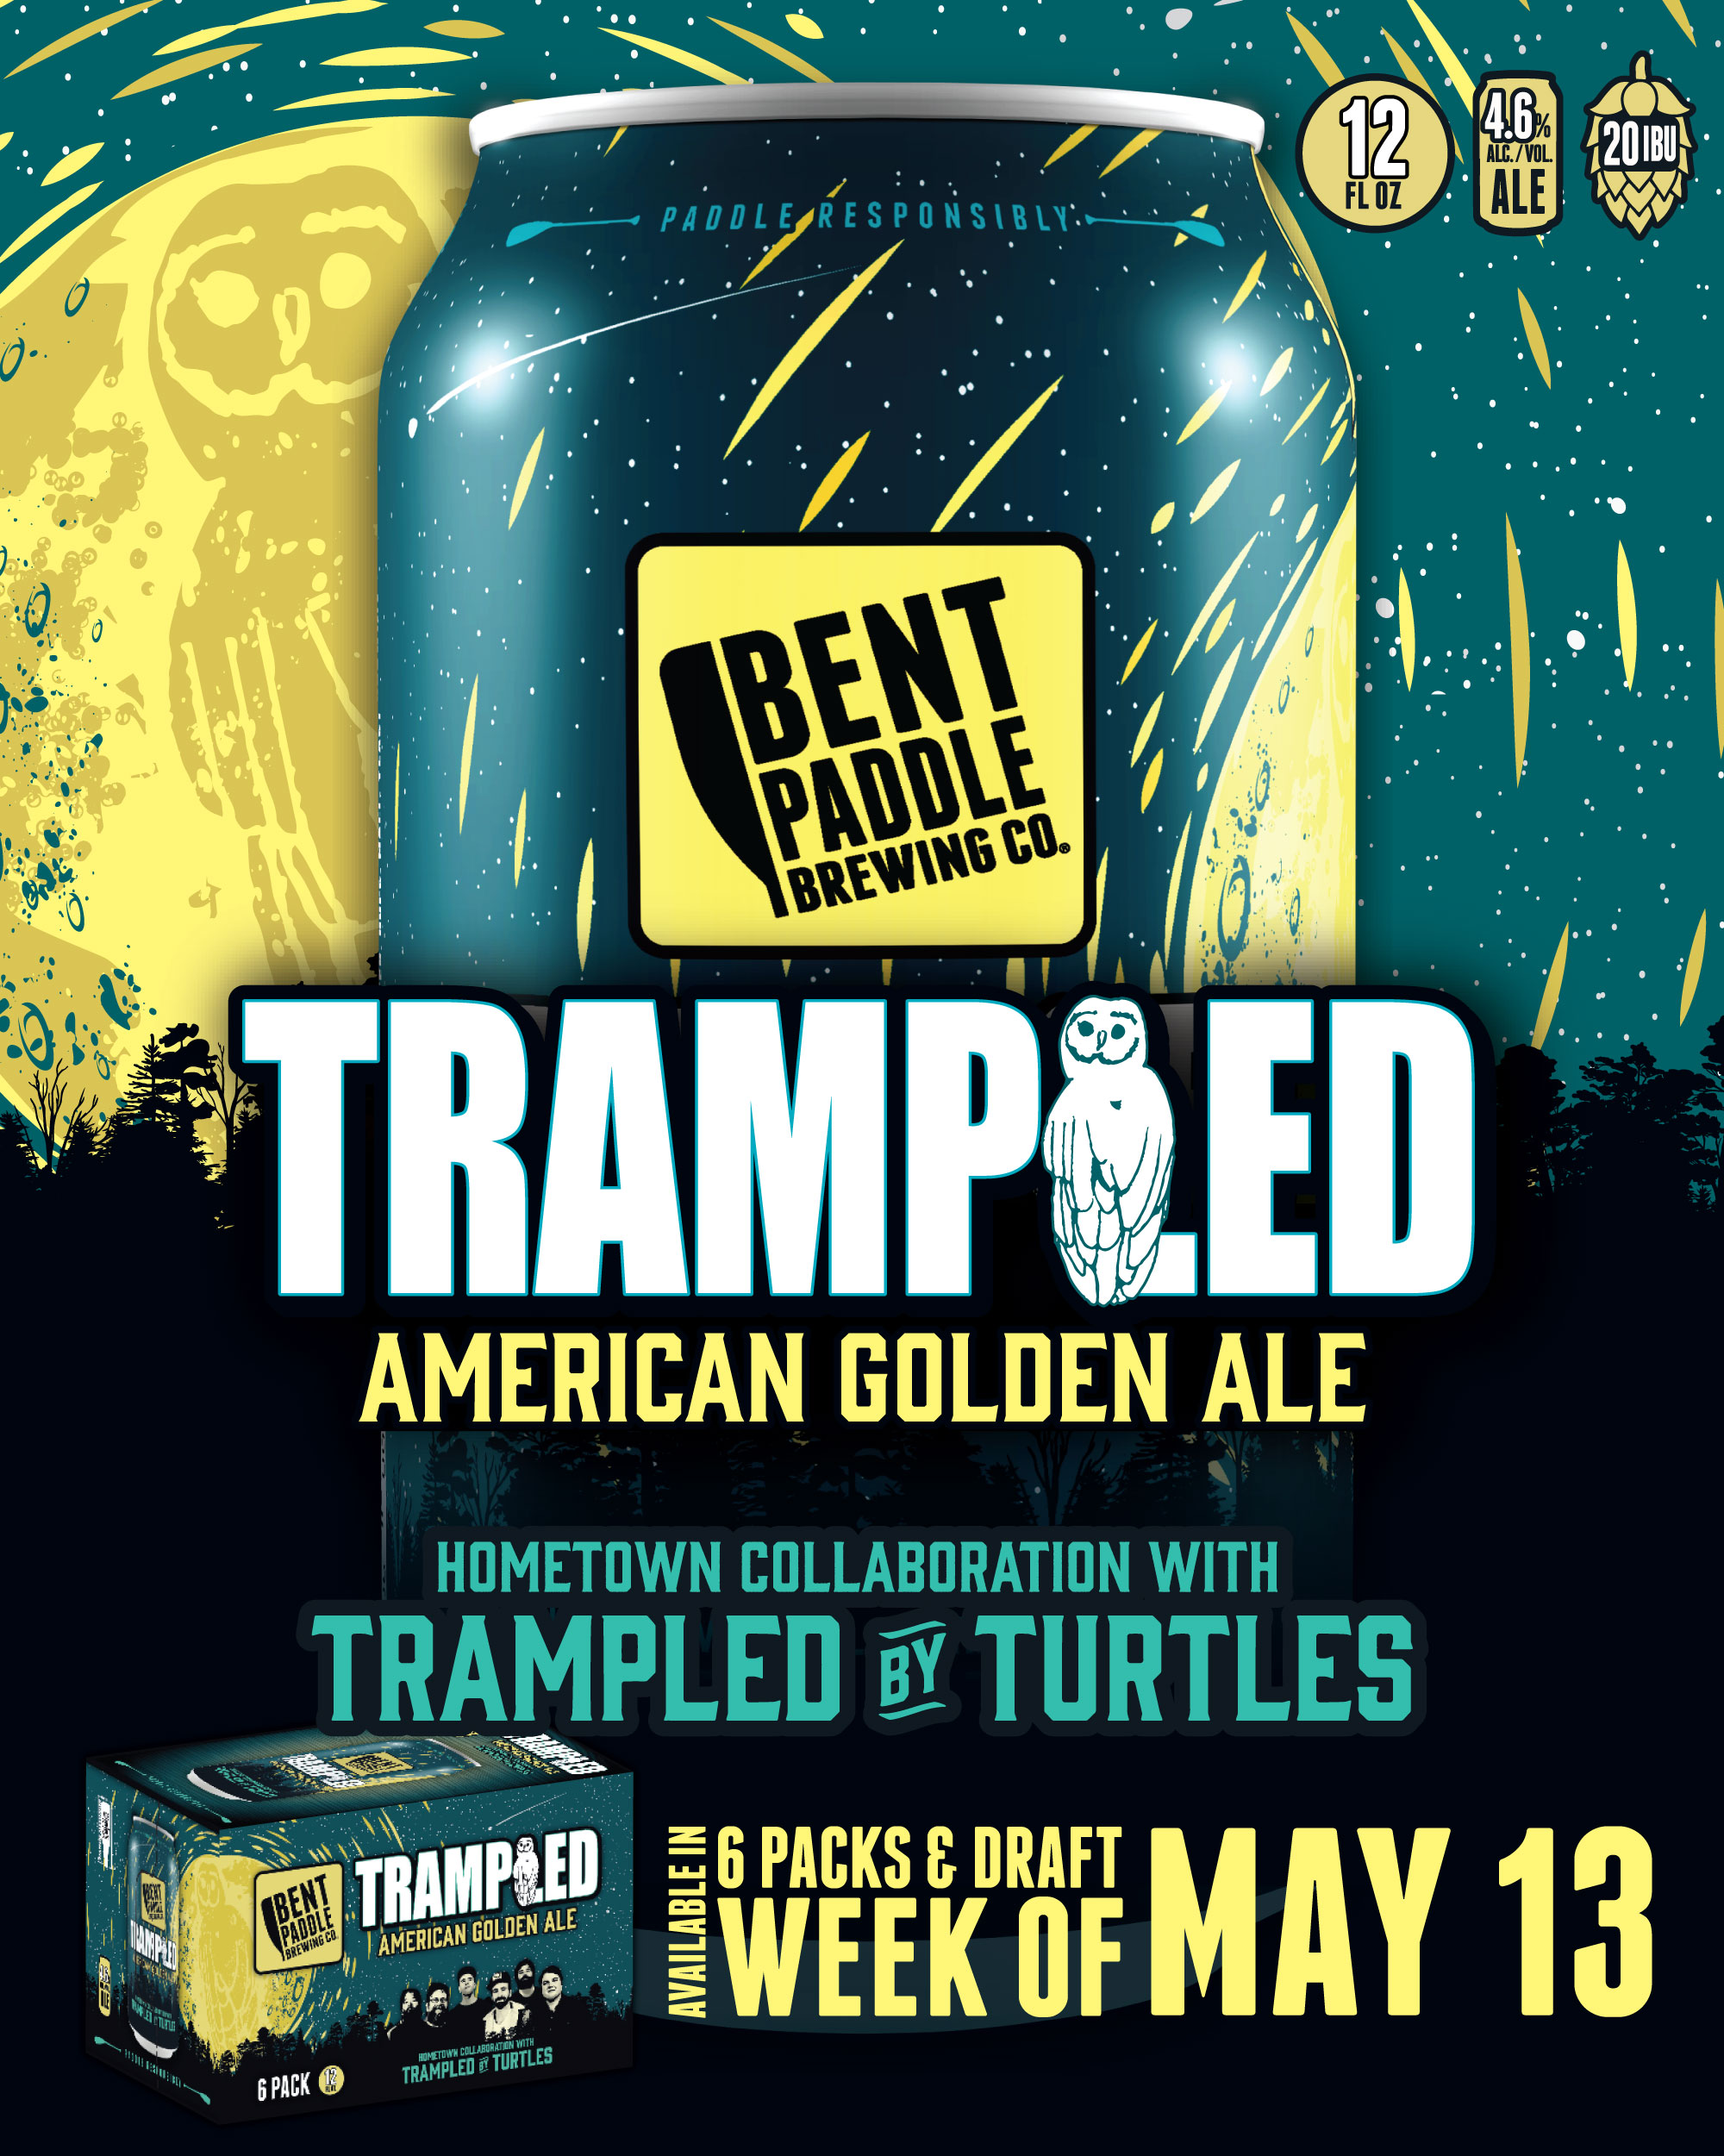 Trampled Golden Ale